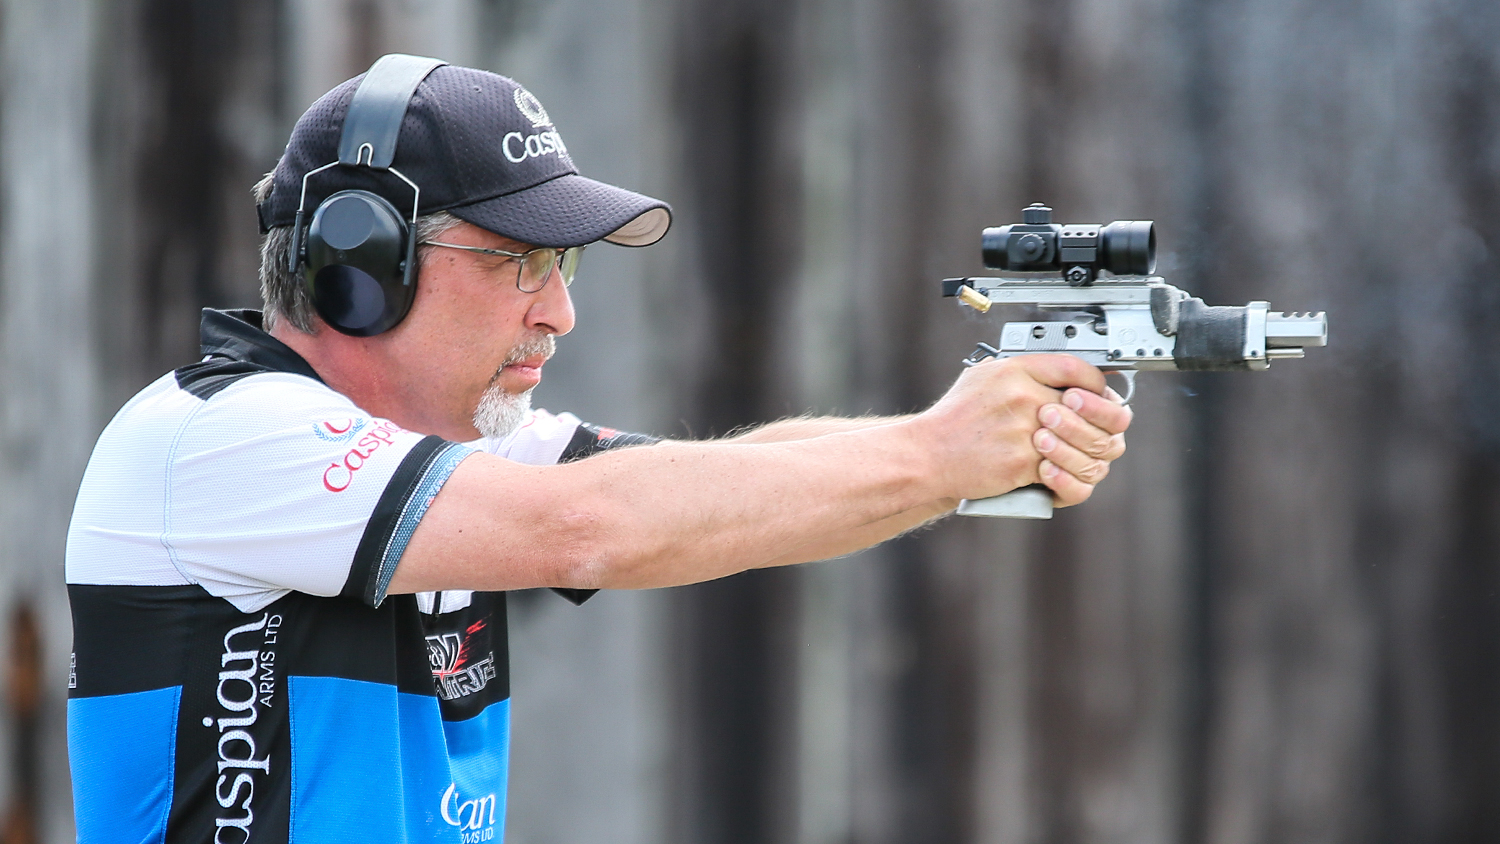 Bruce Piatt Reflects On Three Decades At The NRA Bianchi Cup